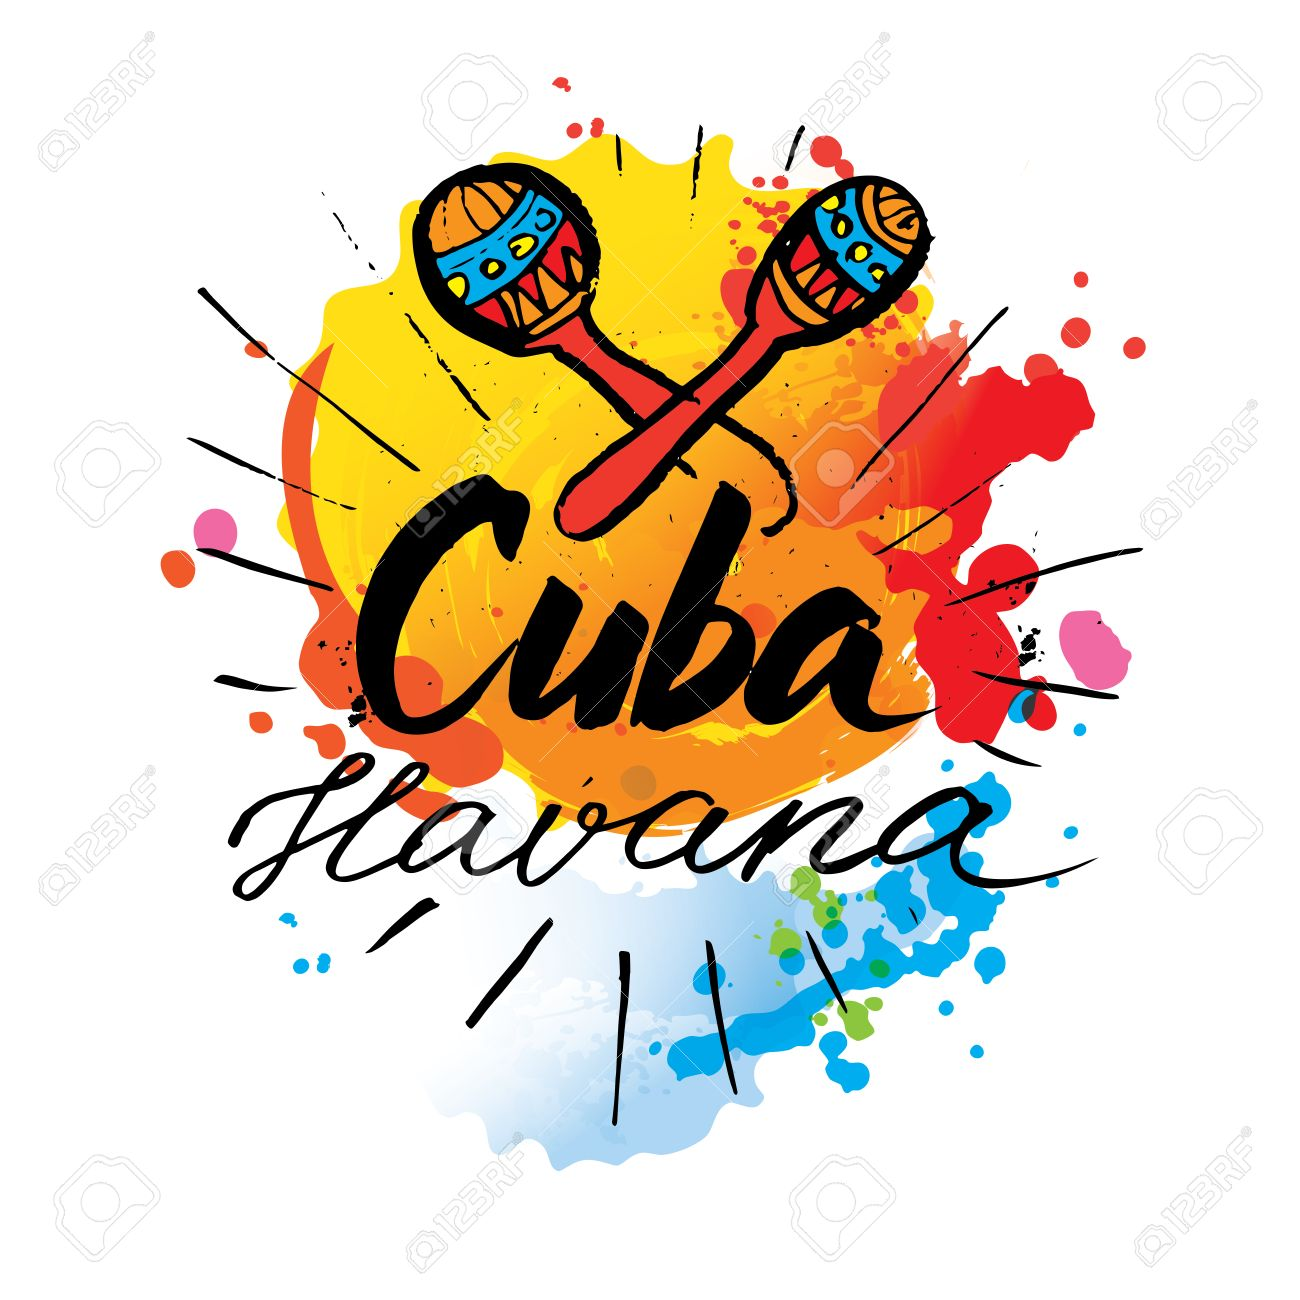 Cuba Havana logo  hand lettering and colorful watercolor elements